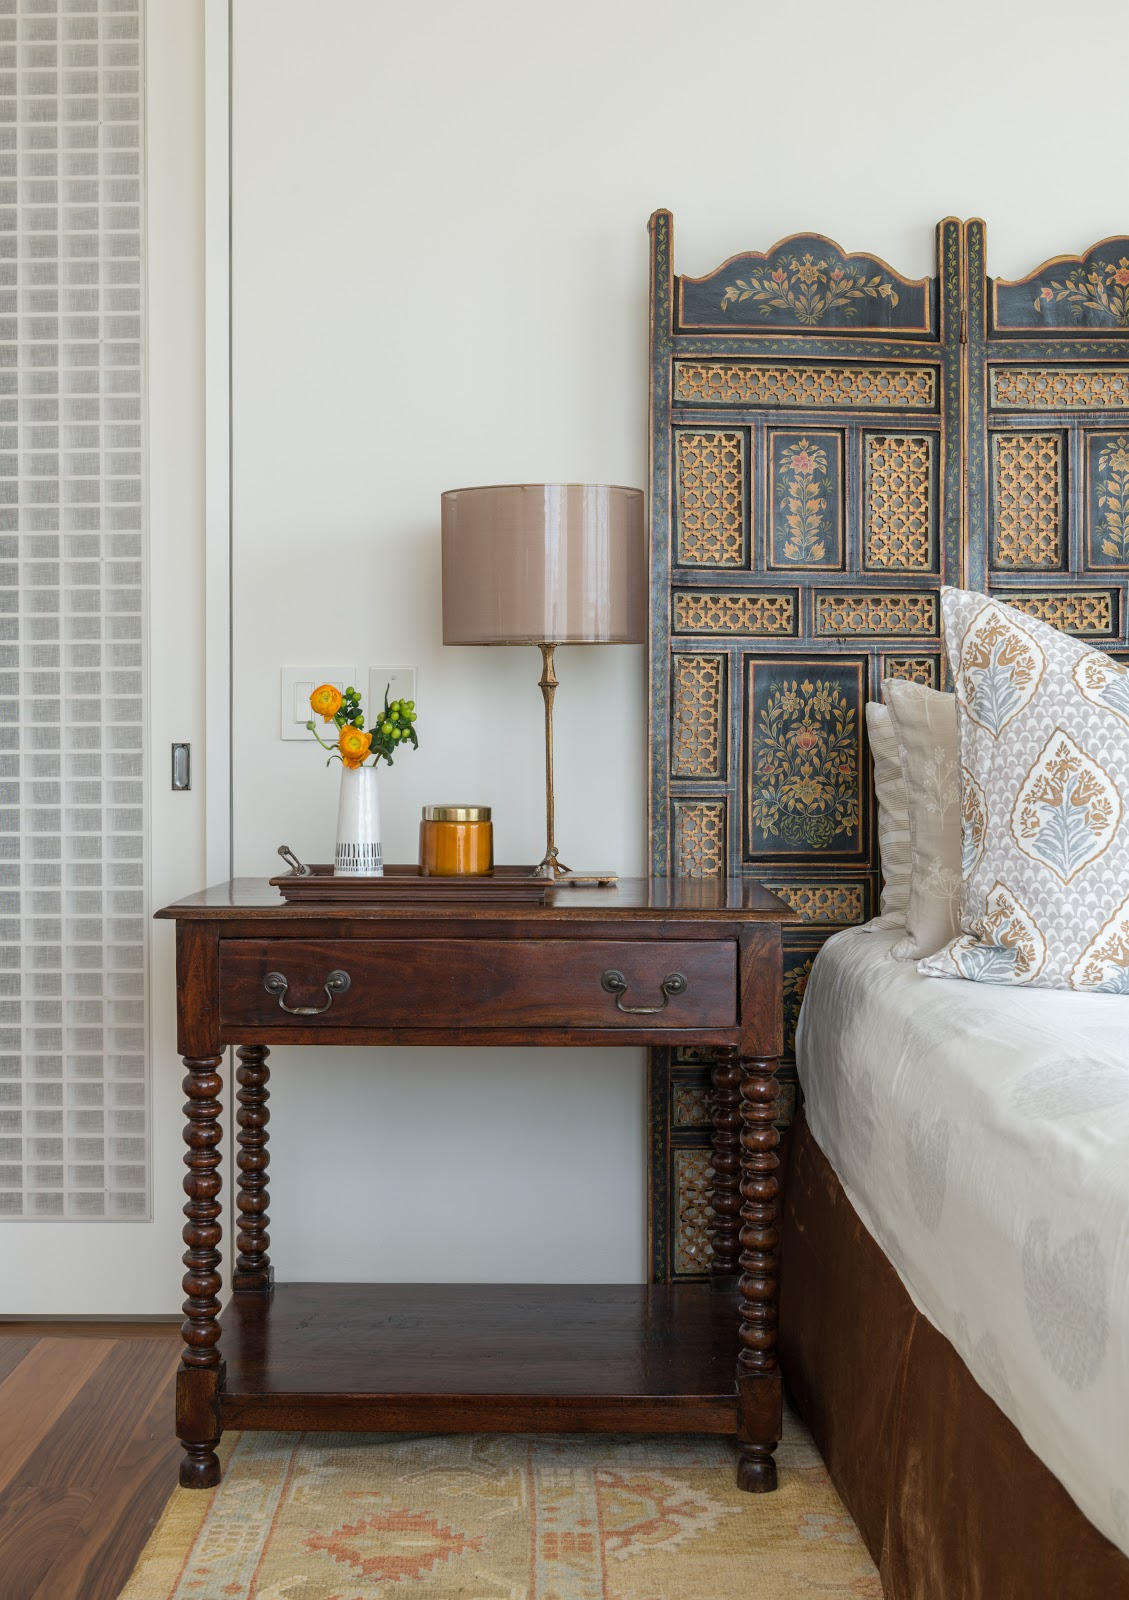 collected high-rise indo-asian inspired bedroom with wooden screen headboard and antique spindle leg nightstand - laura u interior design